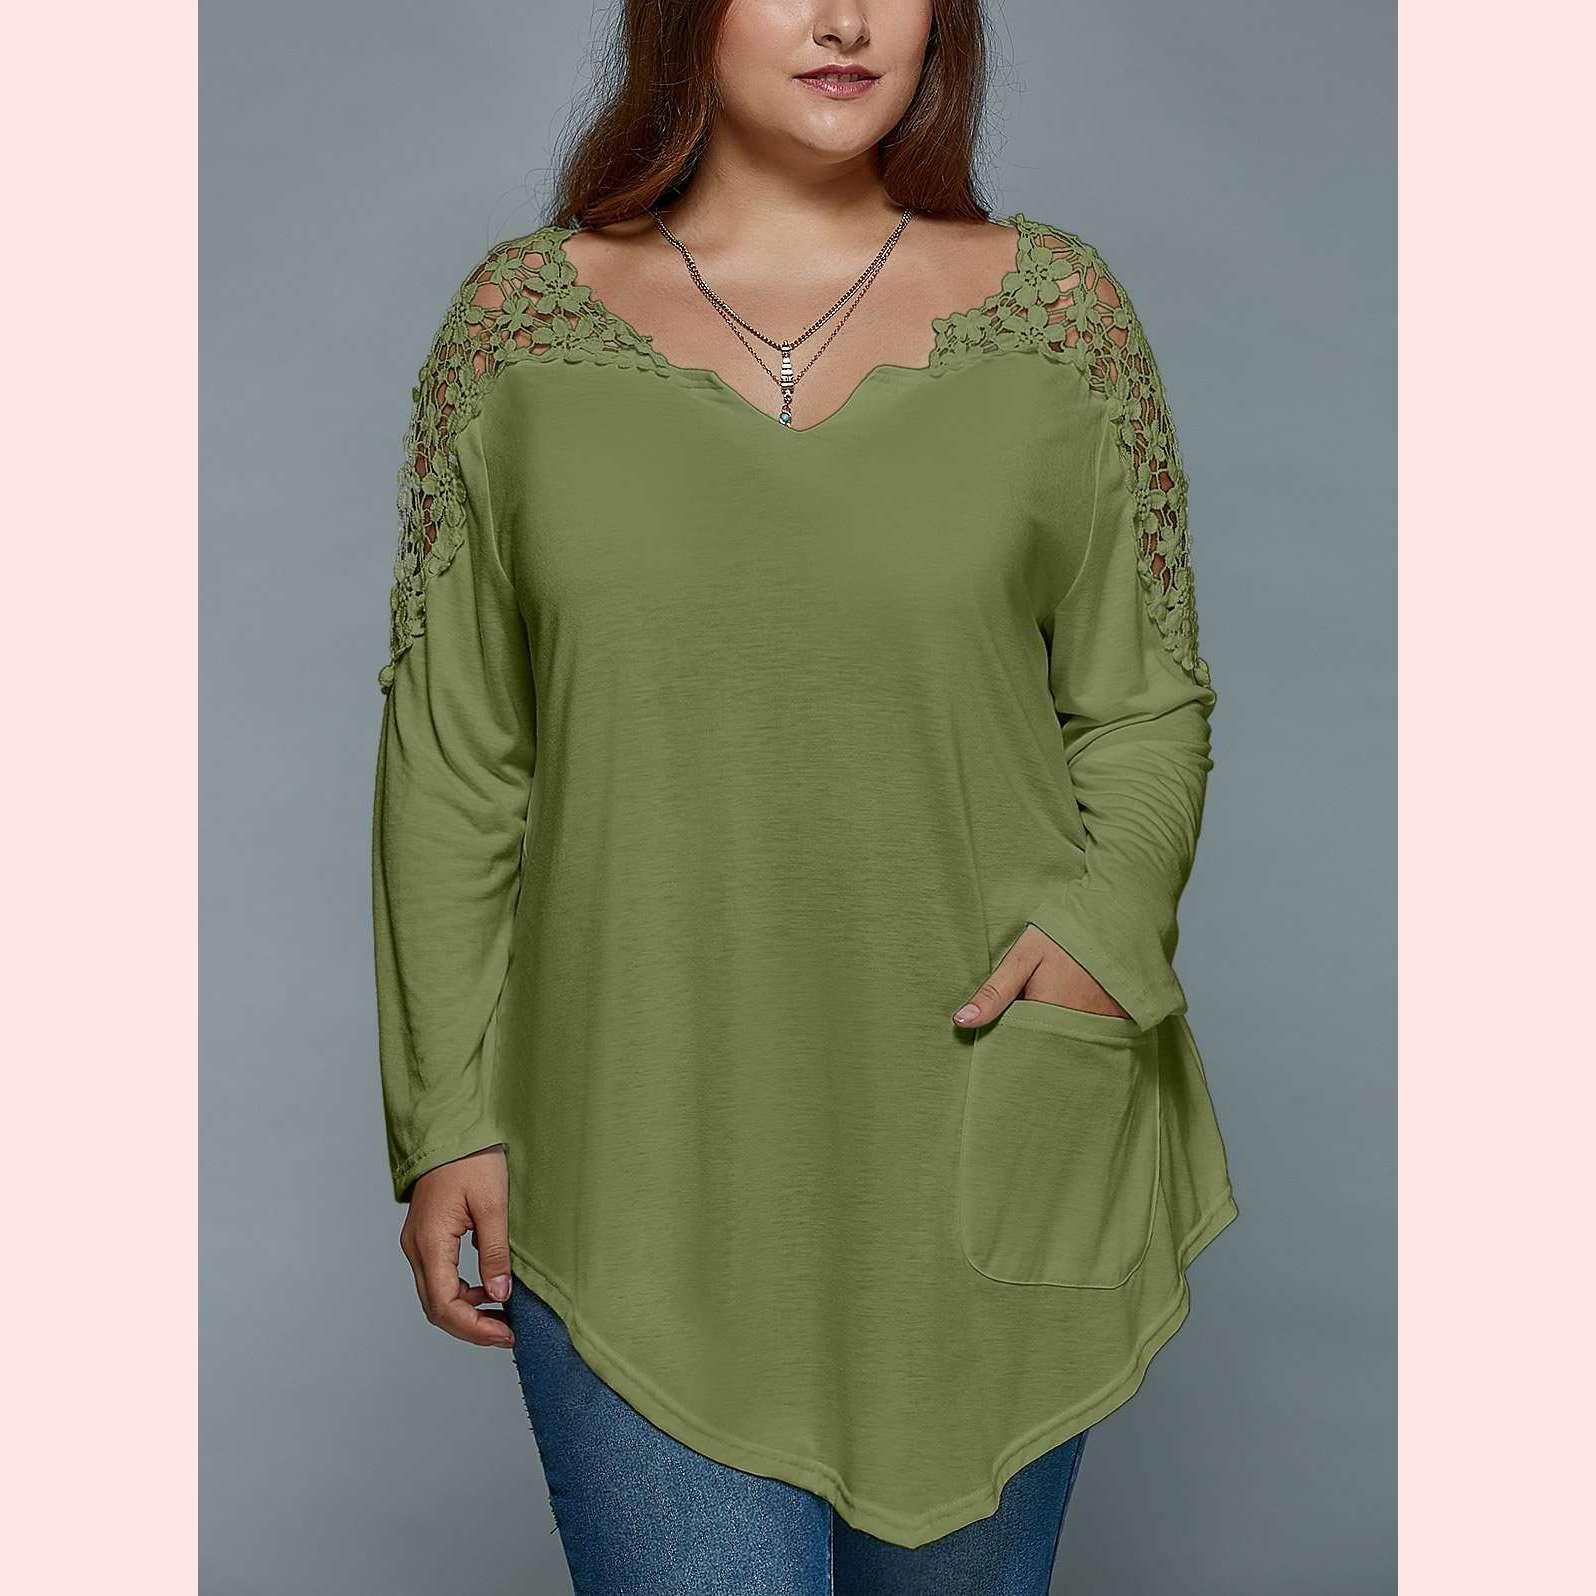 Sweet Daisy Top,Blissful Chic,Olive Green / XL